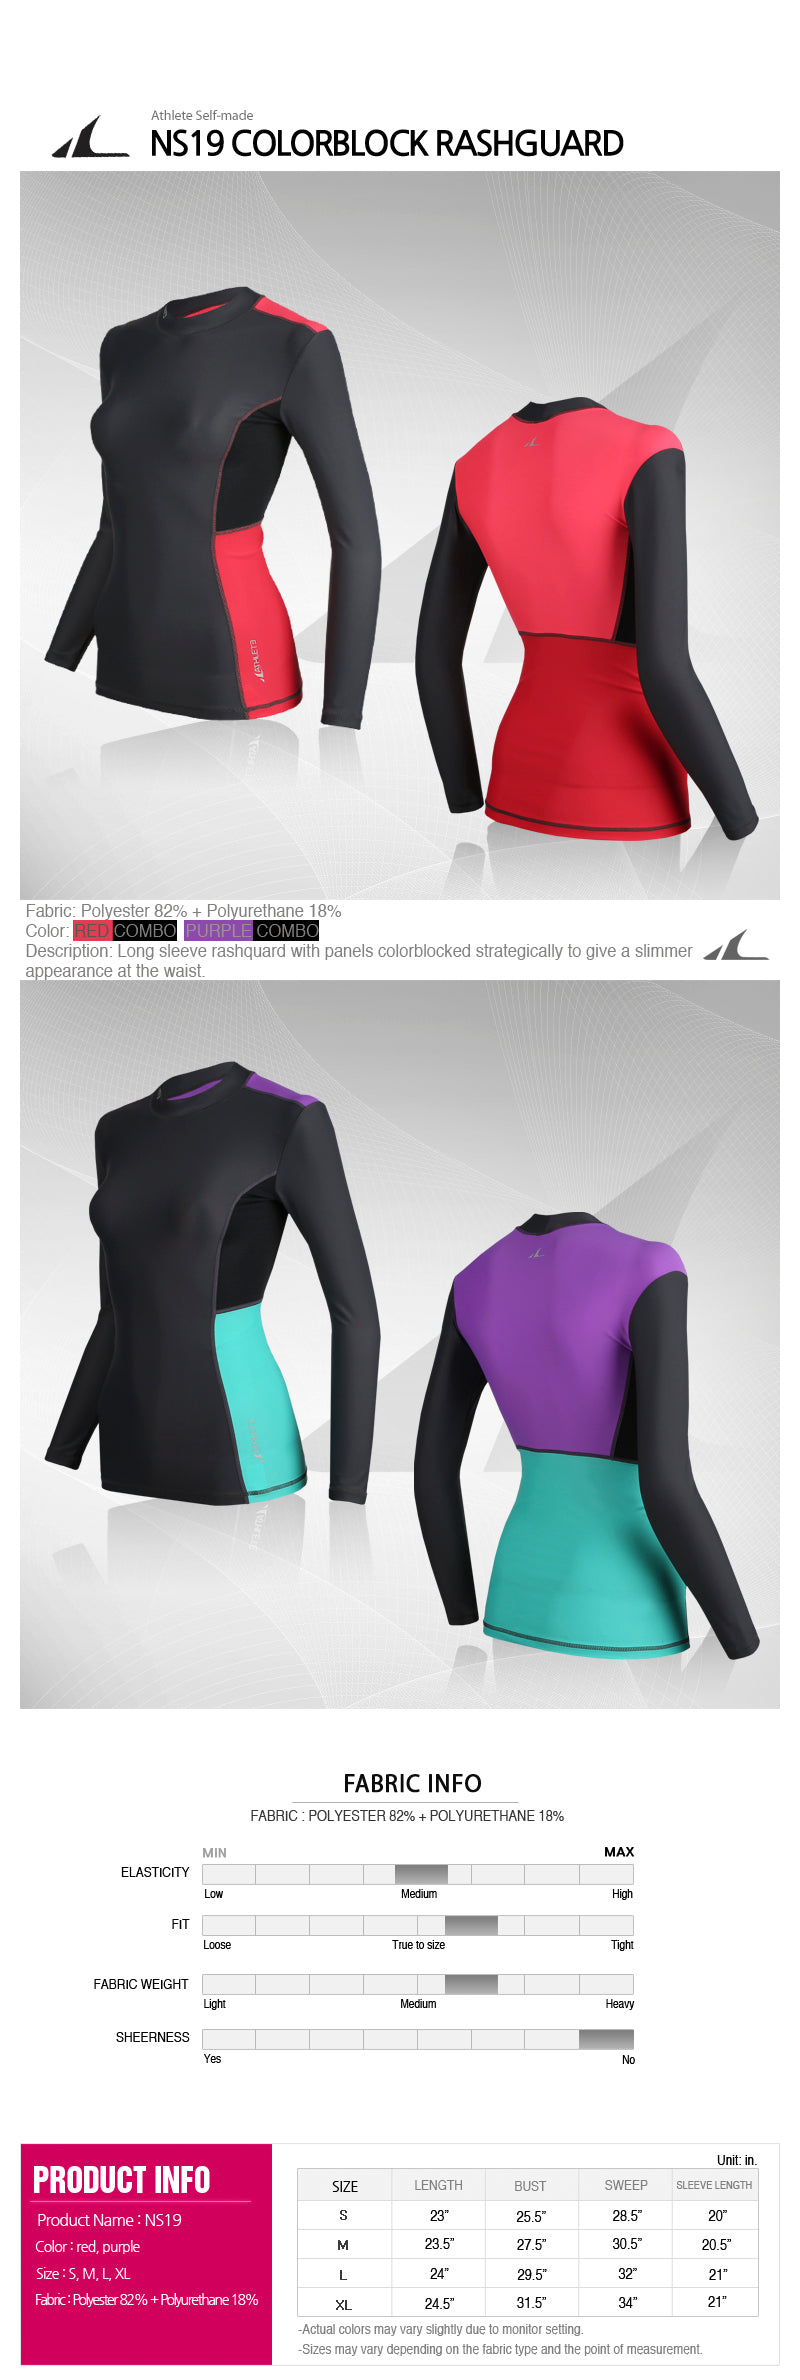 ATHLETE Women's Colorblock Compression Long Sleeve Rashguard Top, Style NS19